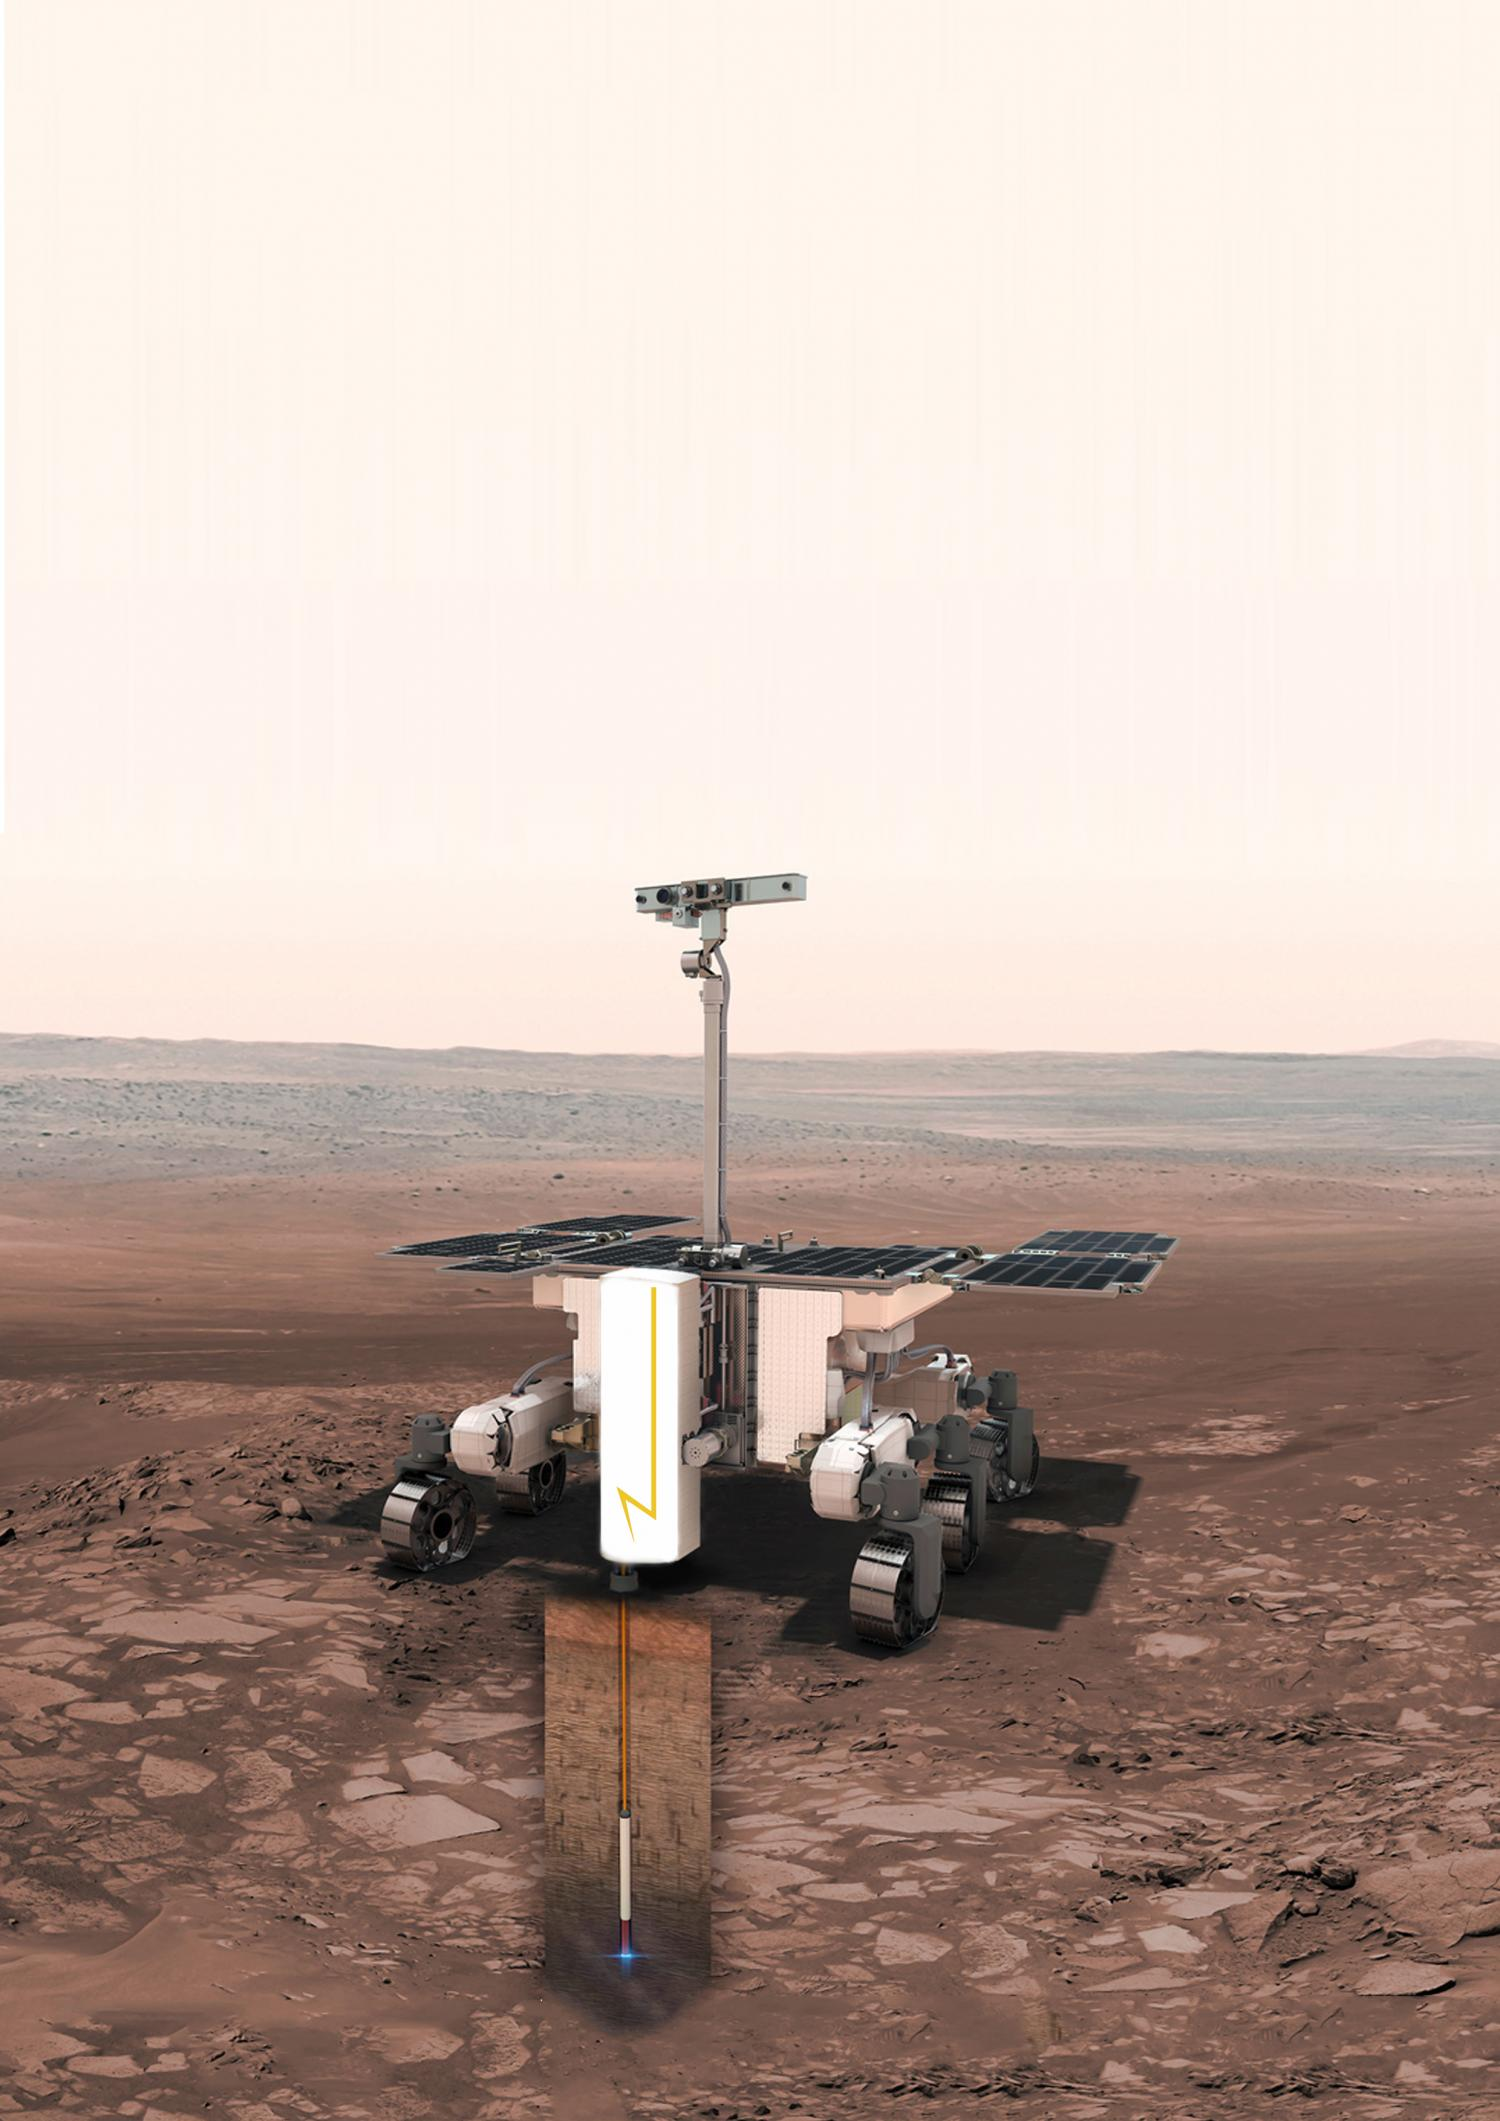 Probing Mars Charging Cars Fuse Box The Plasma Drill Developed For Esa By Norwegian Company Zaptec On Front Of Esas Rover Credit And